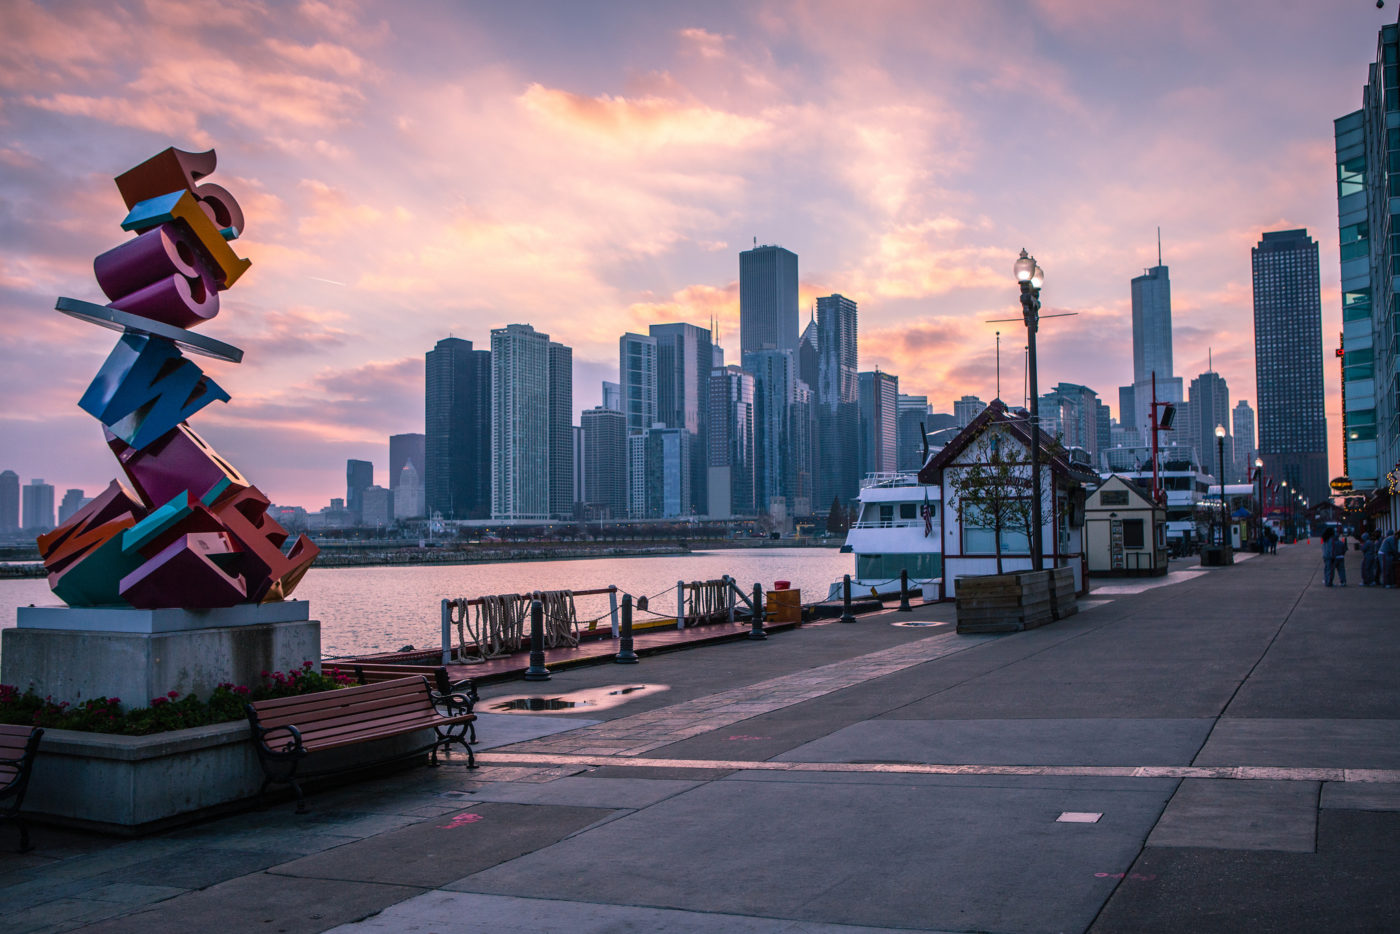 Navy Pier, Chicago. Photo by Anh Dinh via Flickr CC